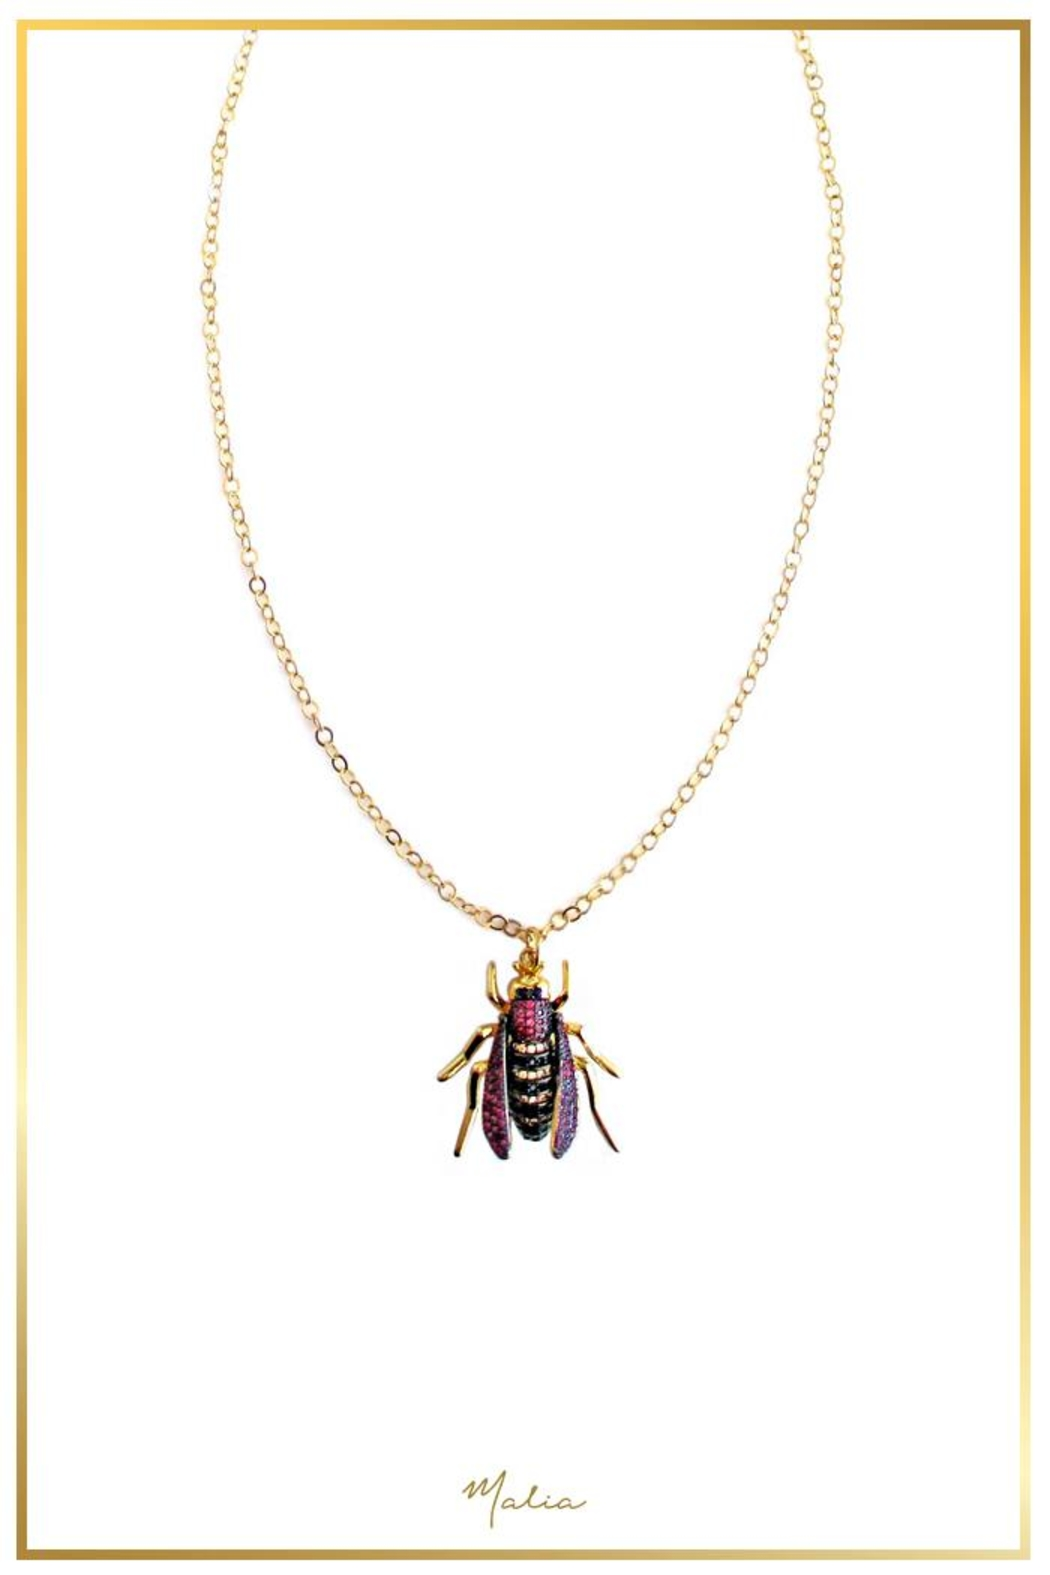 Malia Jewelry Insect Necklace - Main Image